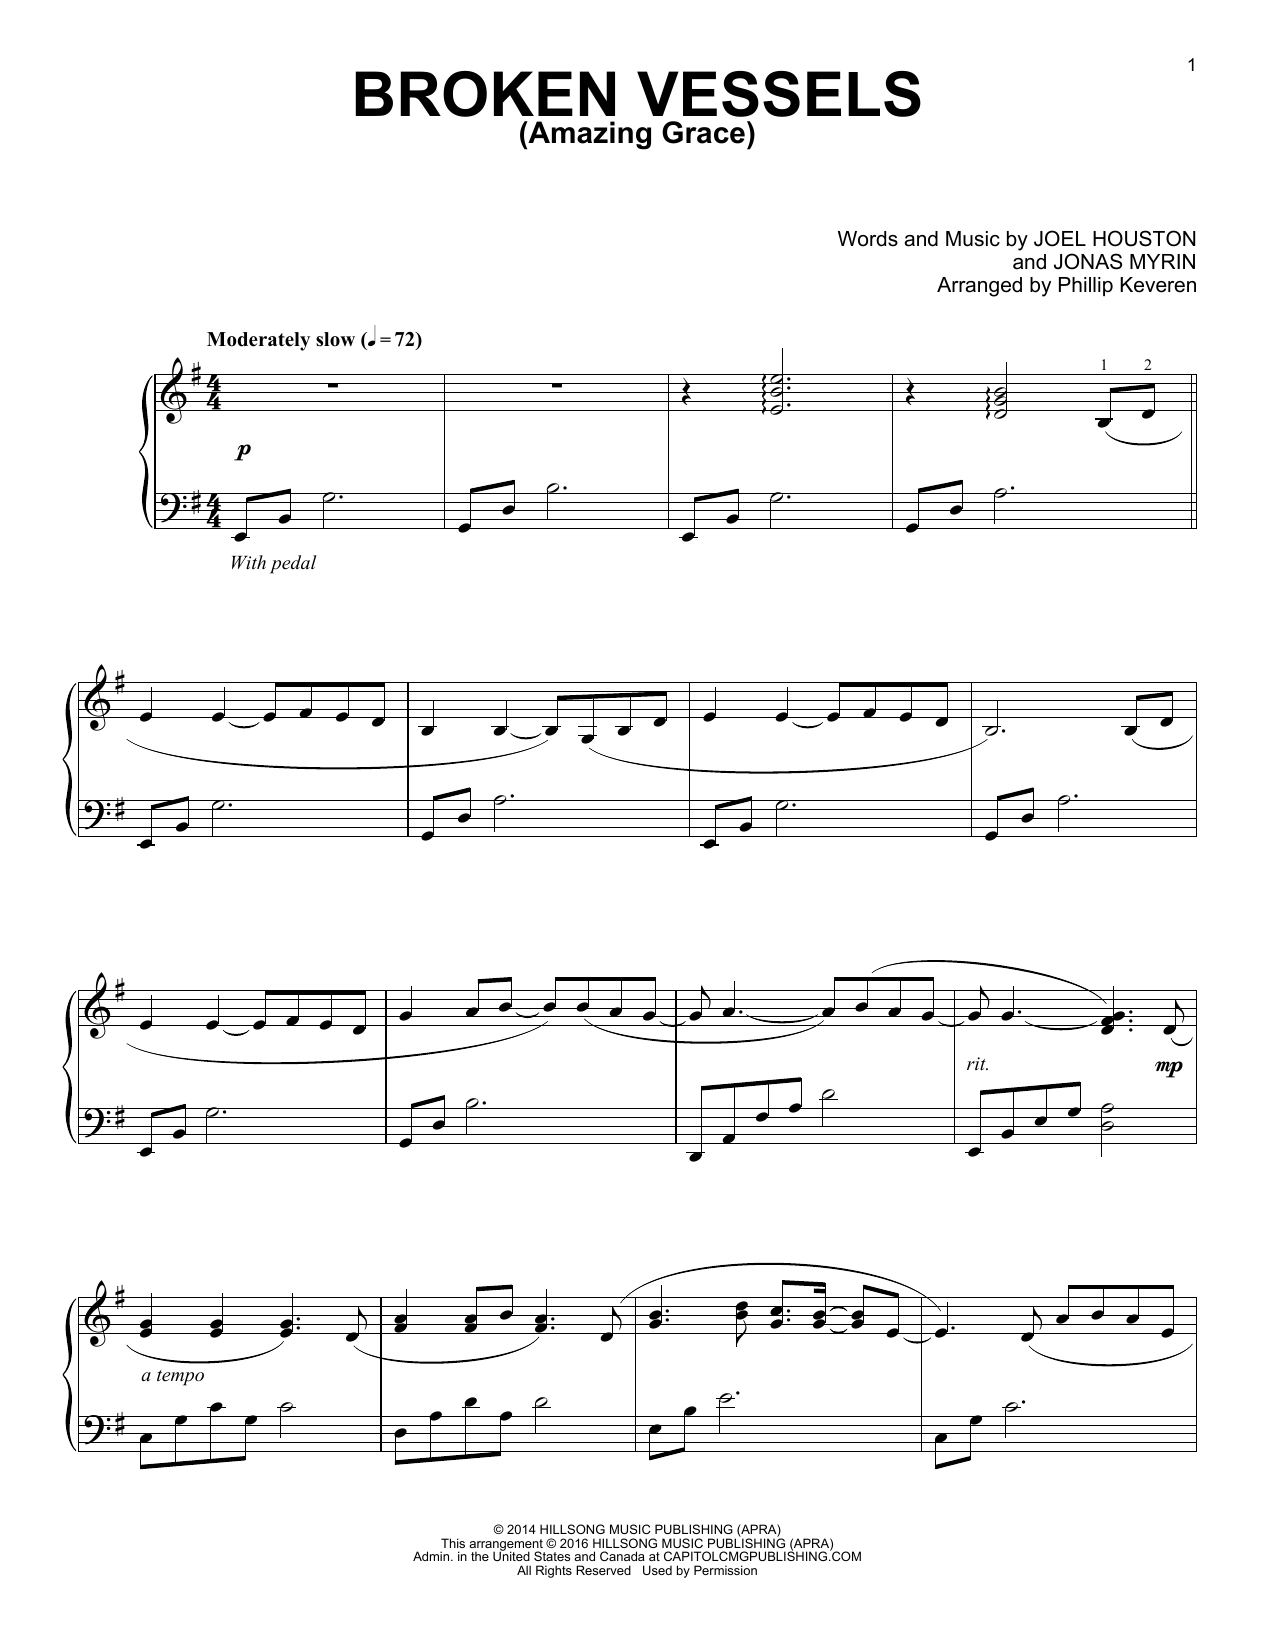 Christian Music - Sheet Music at Stantonu0026#39;s Sheet Music